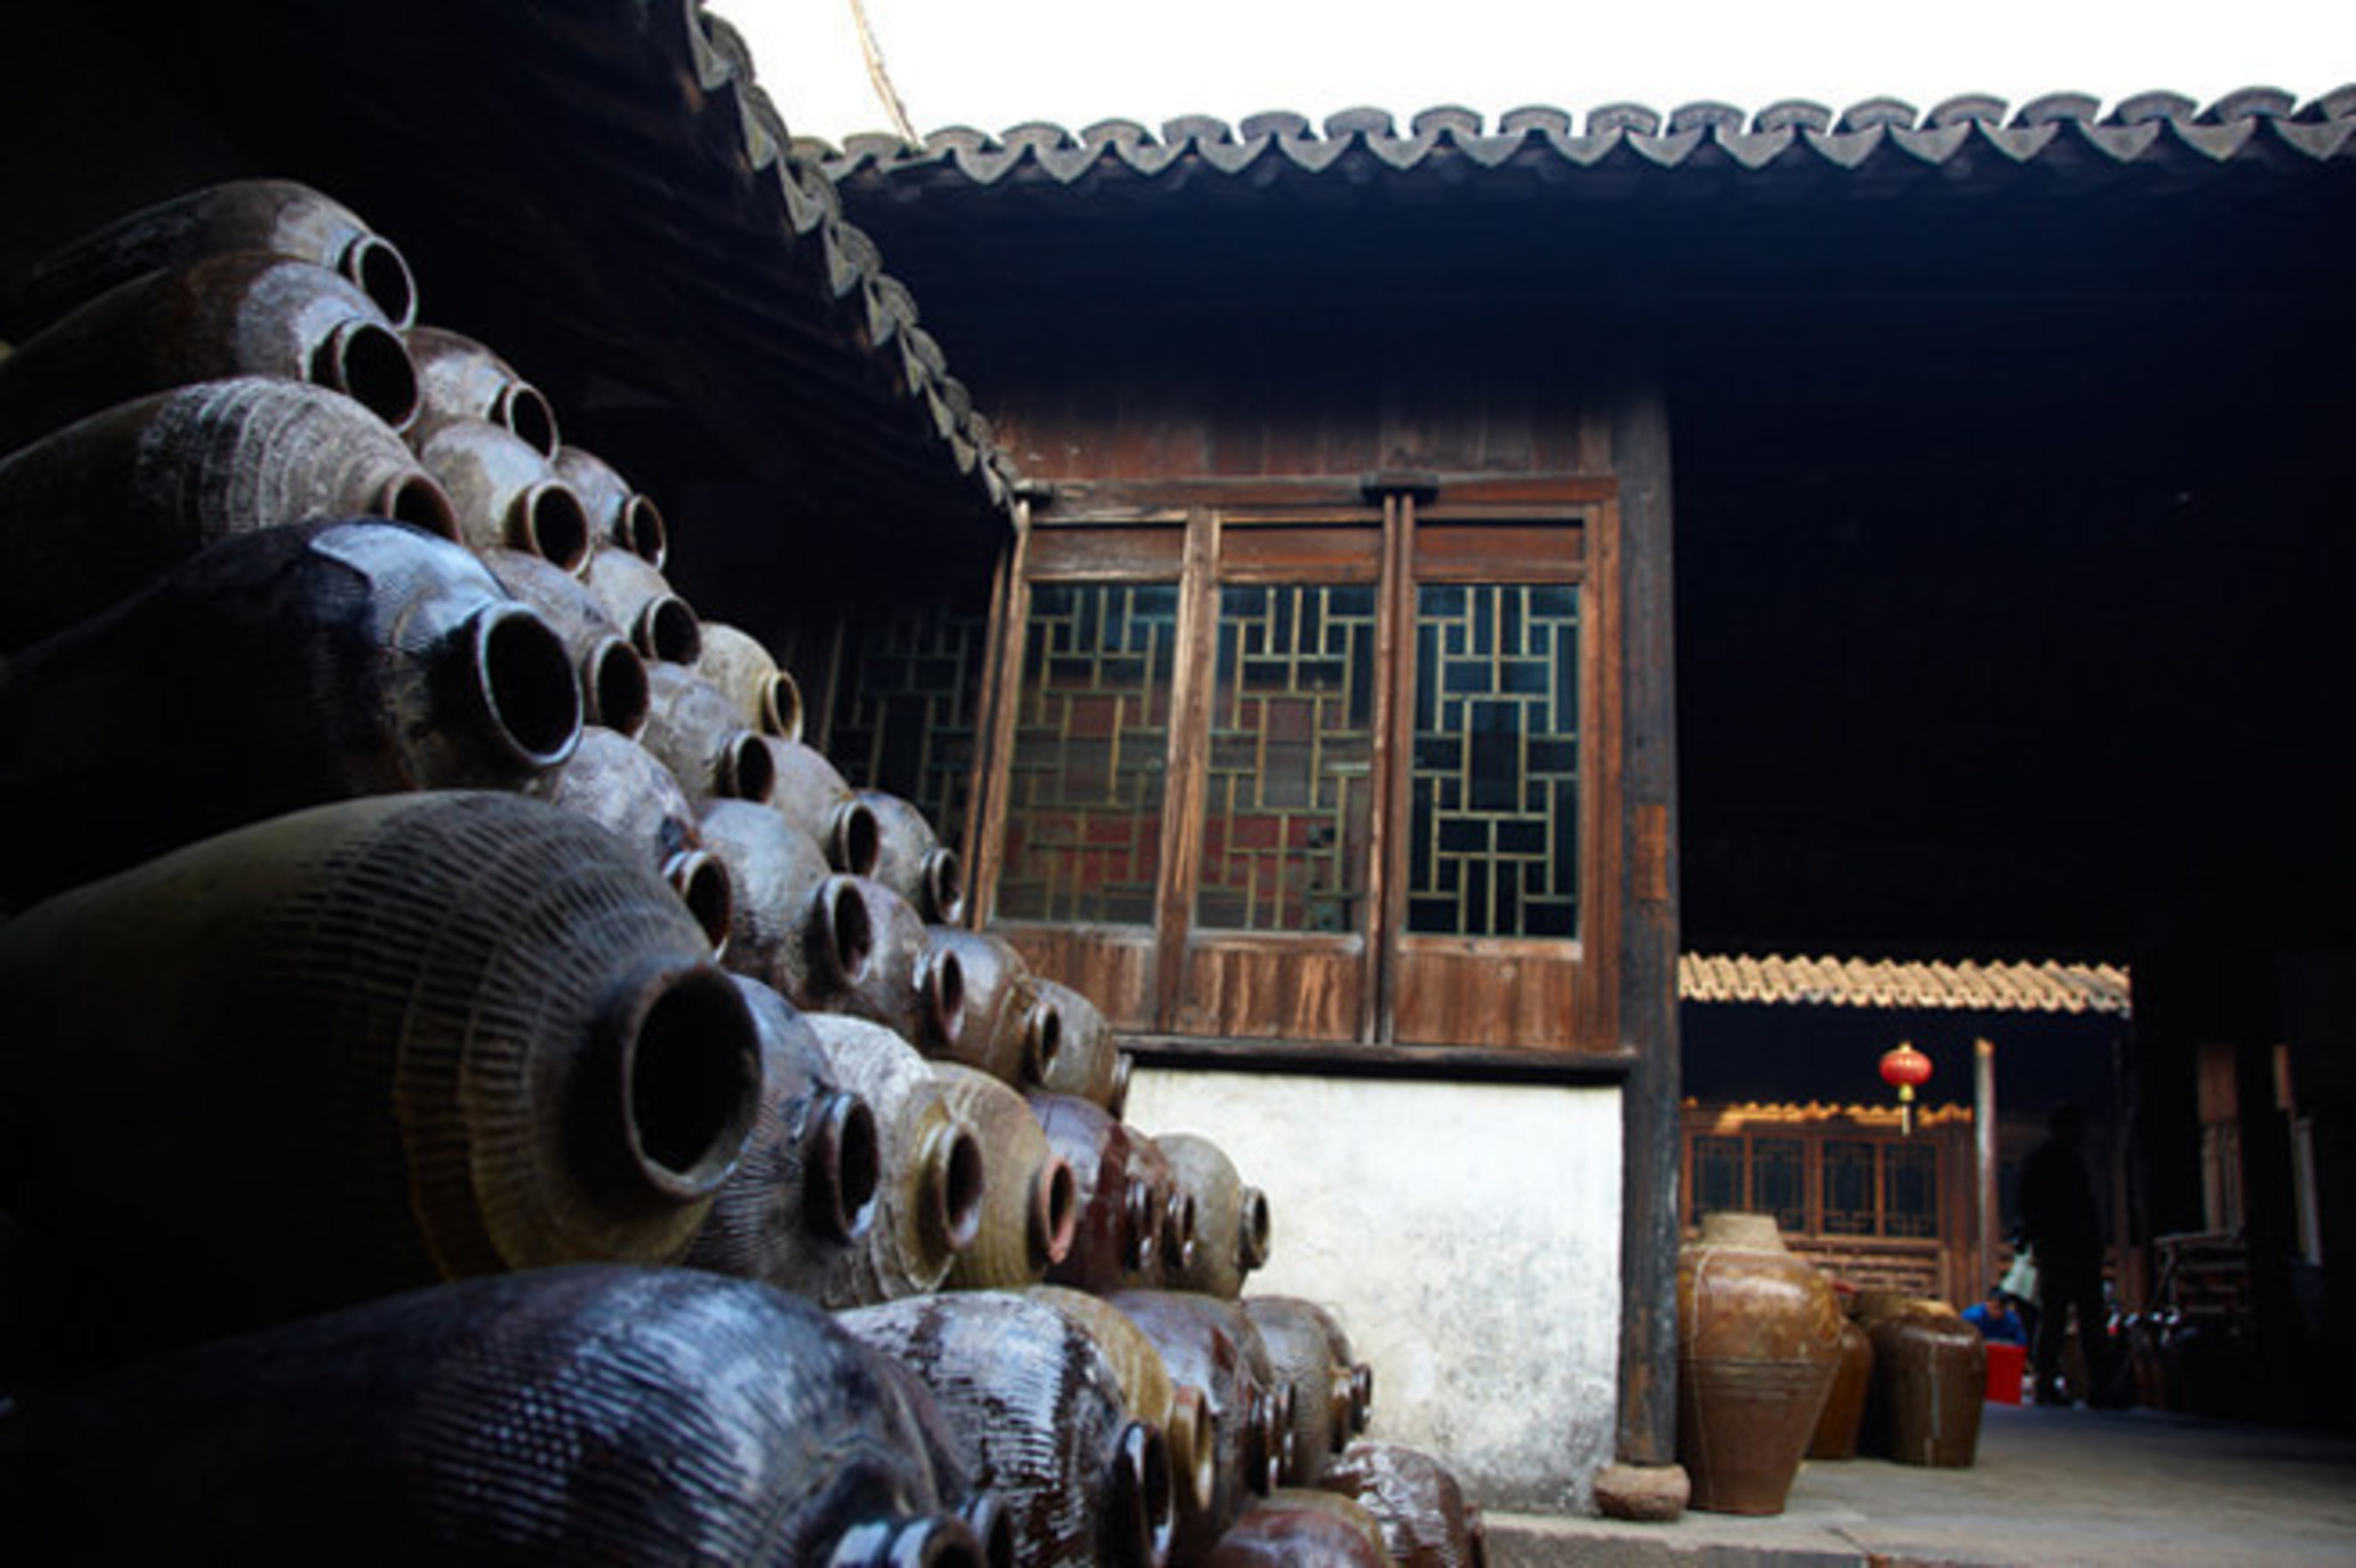 Zhouzhuang's historic folk liquor distillery brews yellow rice wine and history